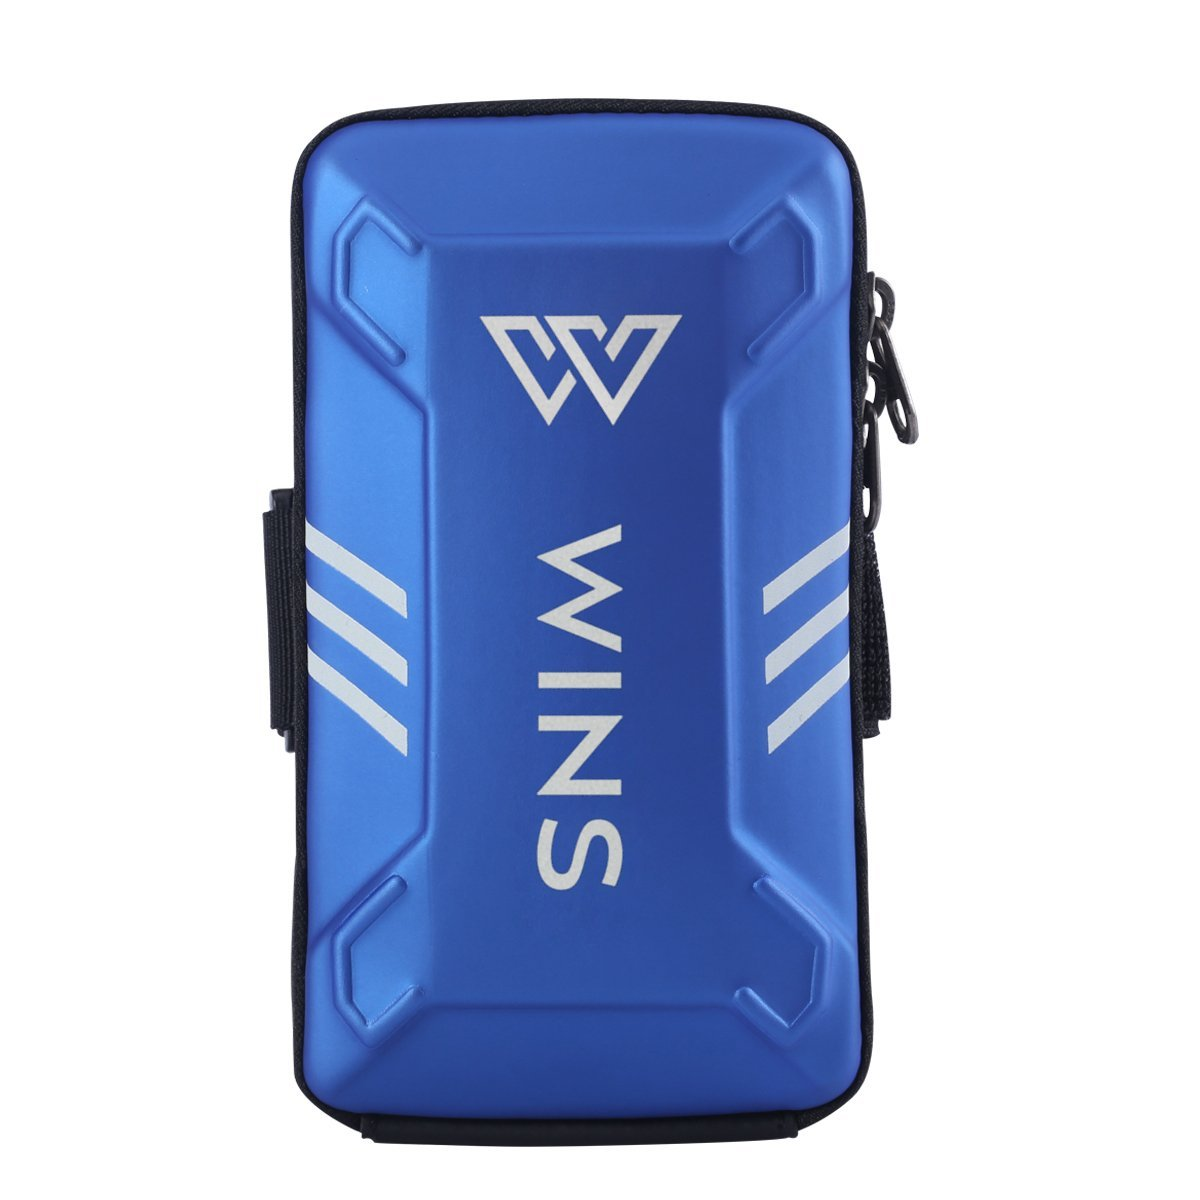 WINS Sports Armband, Waterproof Night Running Multi-functional Pockets, Workout Arm Bag for iPhone, Android Cell Phones (Blue, Large)